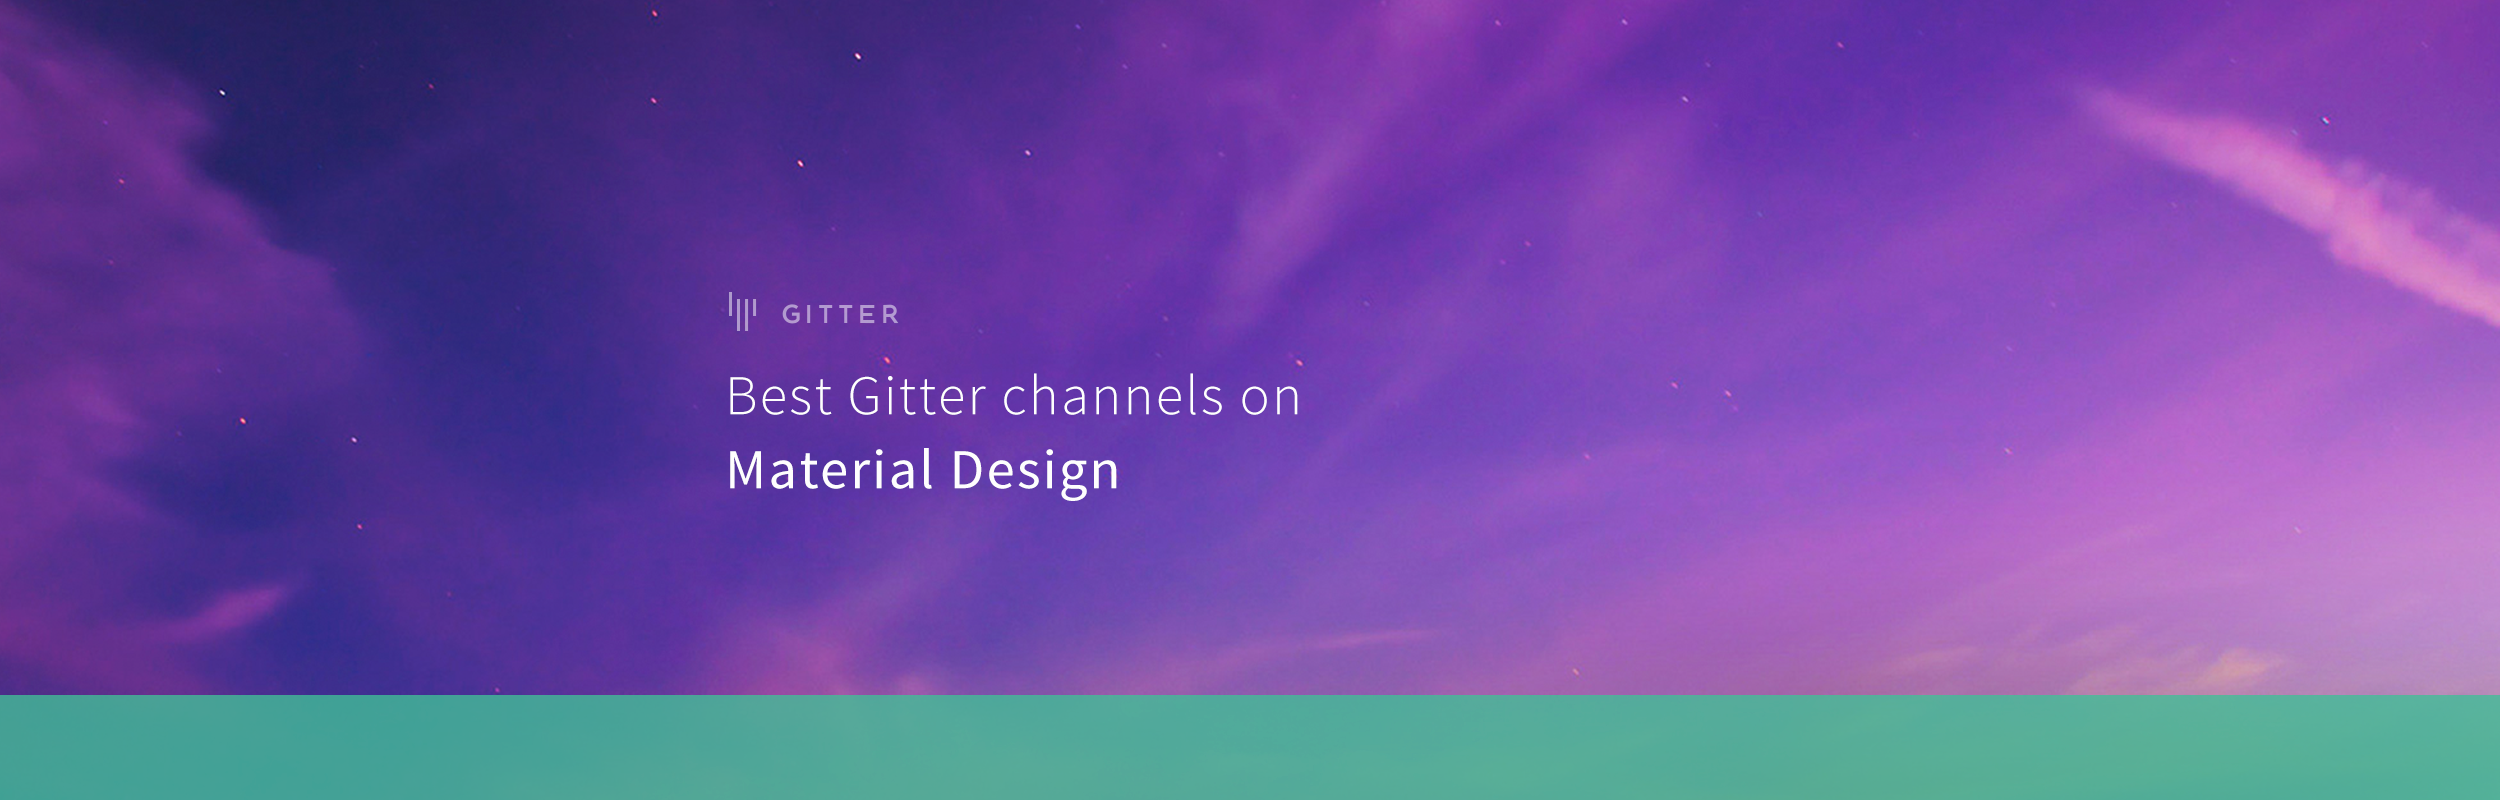 Best Material Design Channels on Gitter